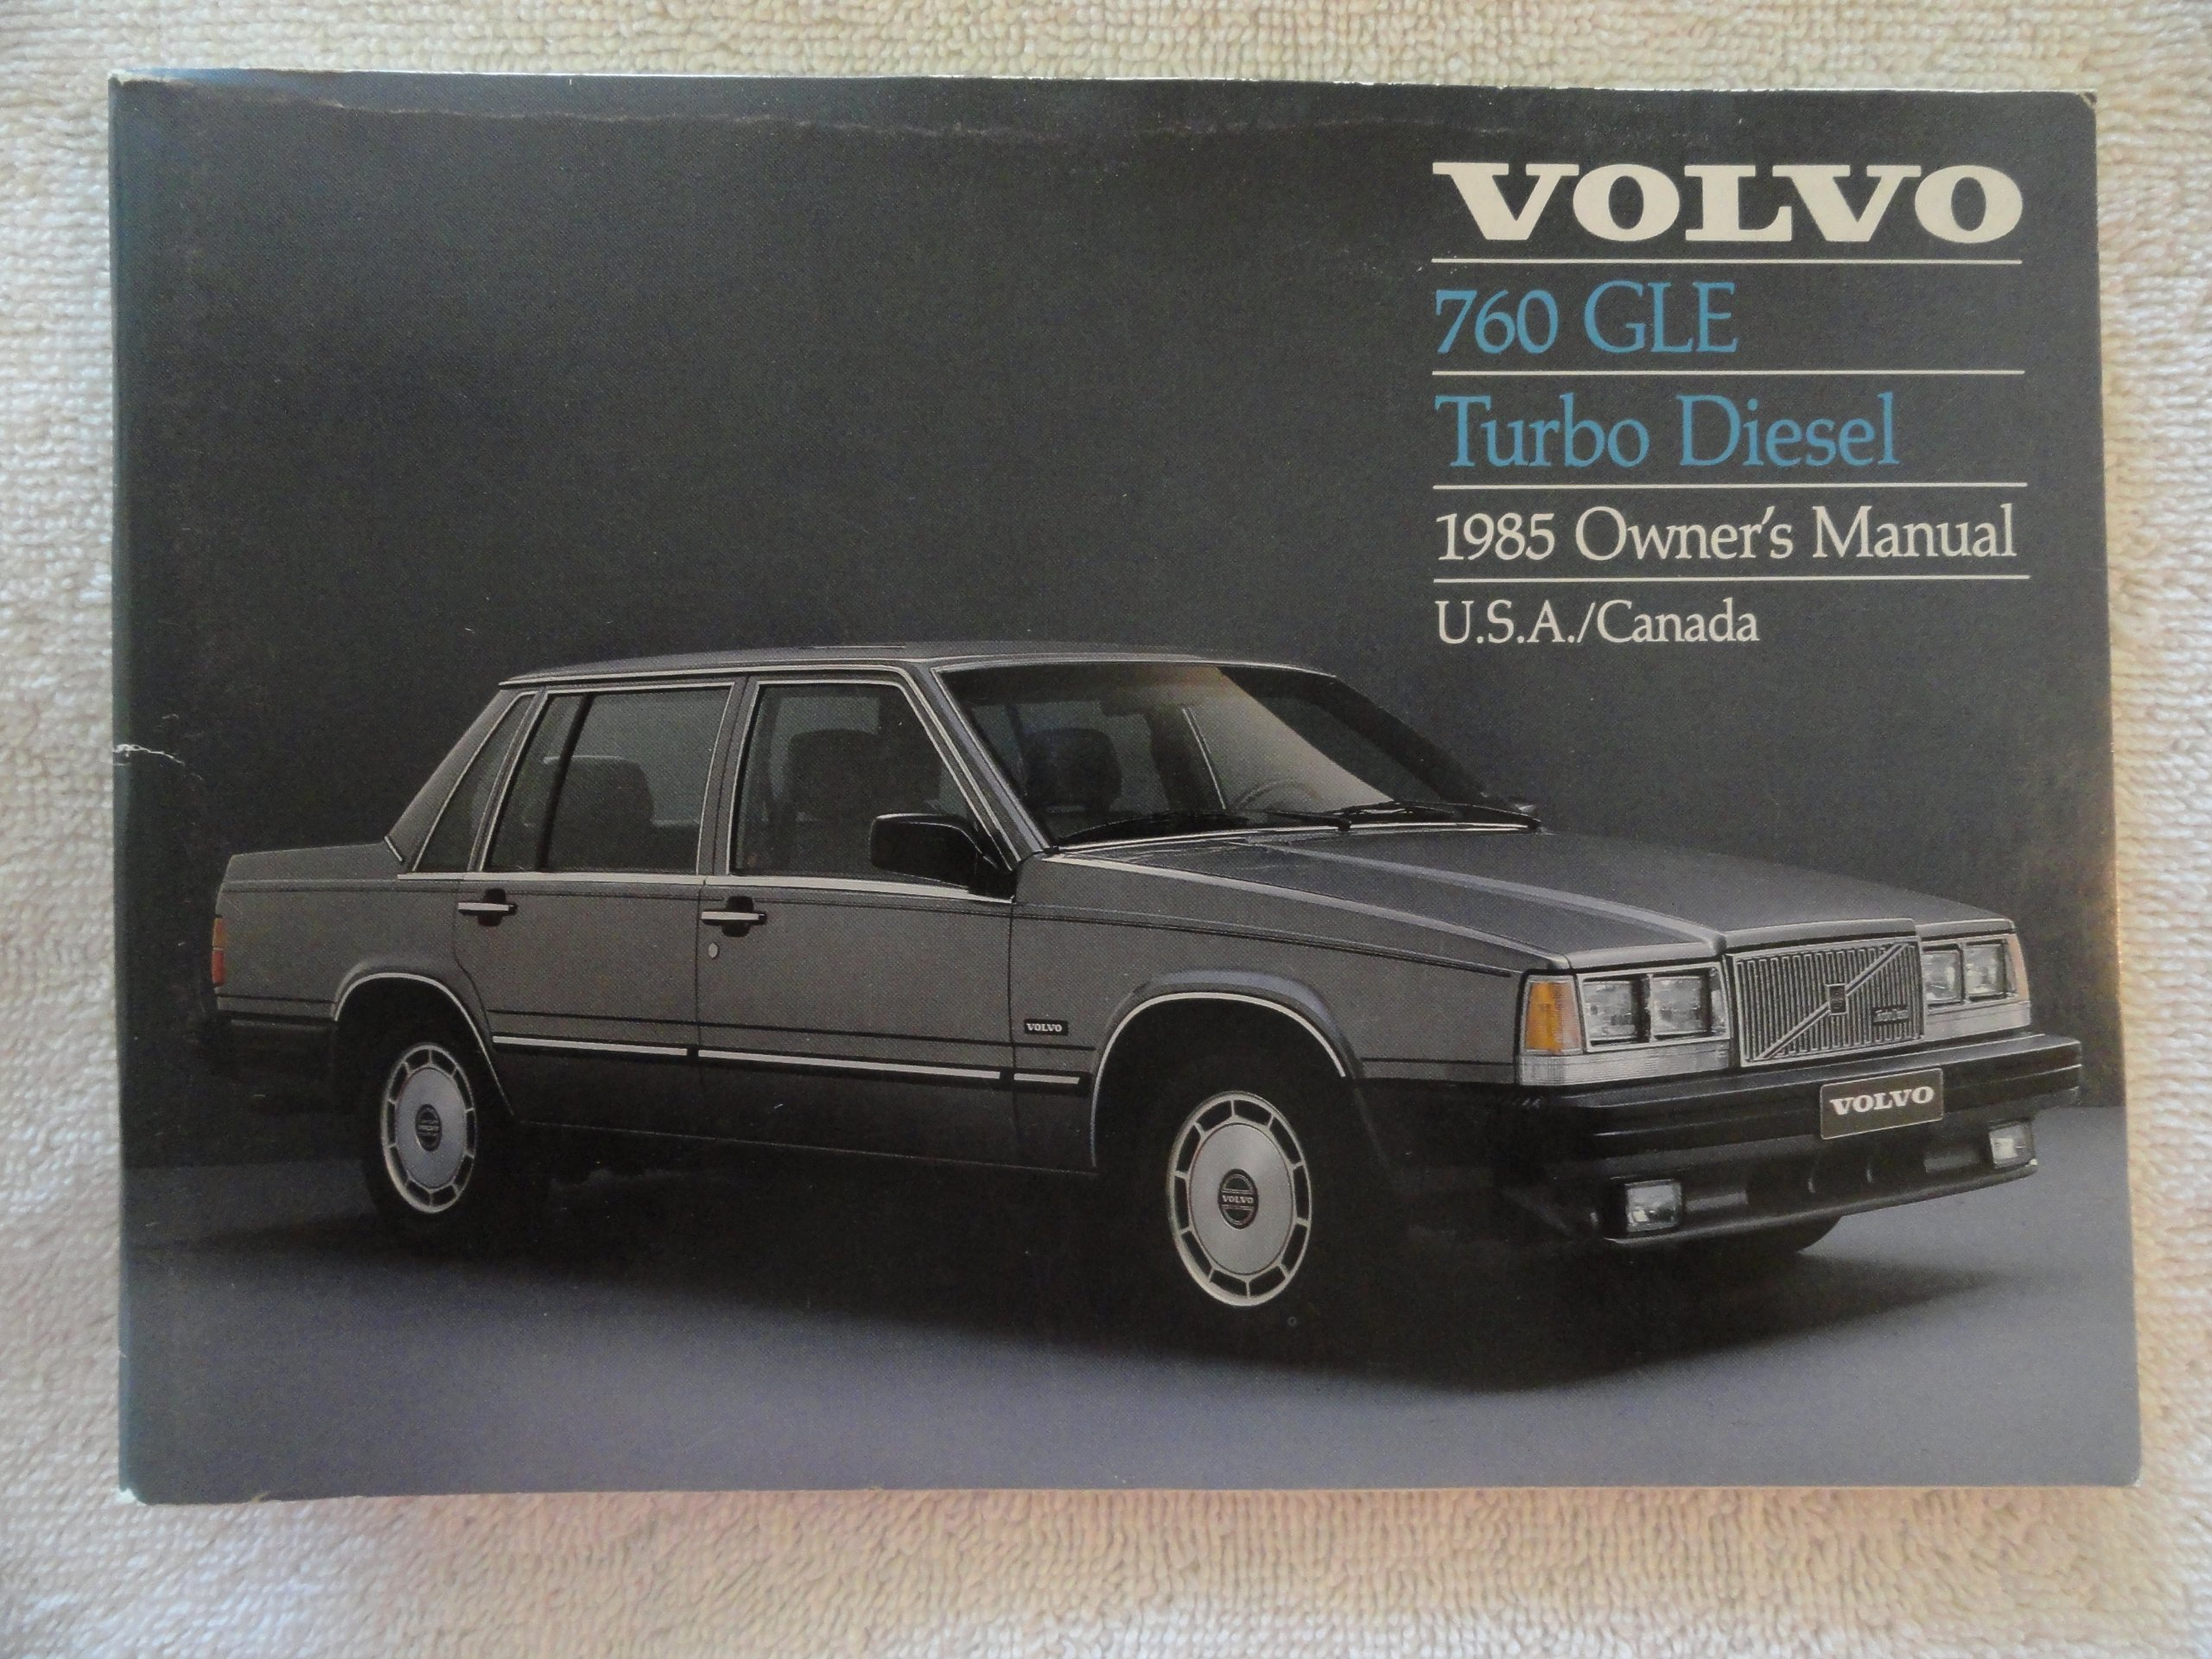 1985 Volvo 760 GLE Turbo Diesel Owners Manual Paperback – 1985